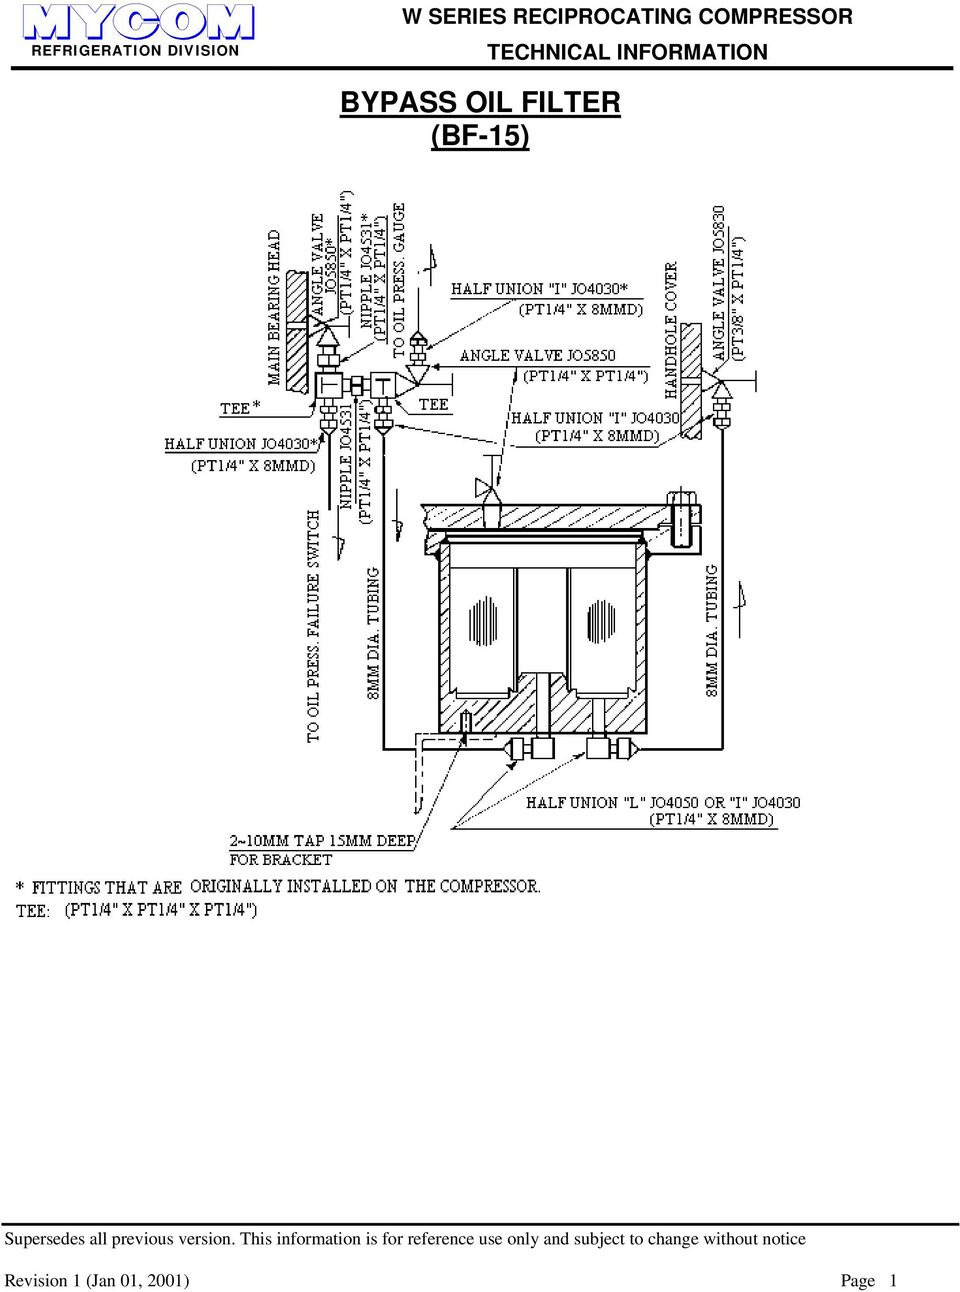 W SERIES RECIPROCATING COMPRESSOR TECHNICAL INFORMATION 12WB, 124WB